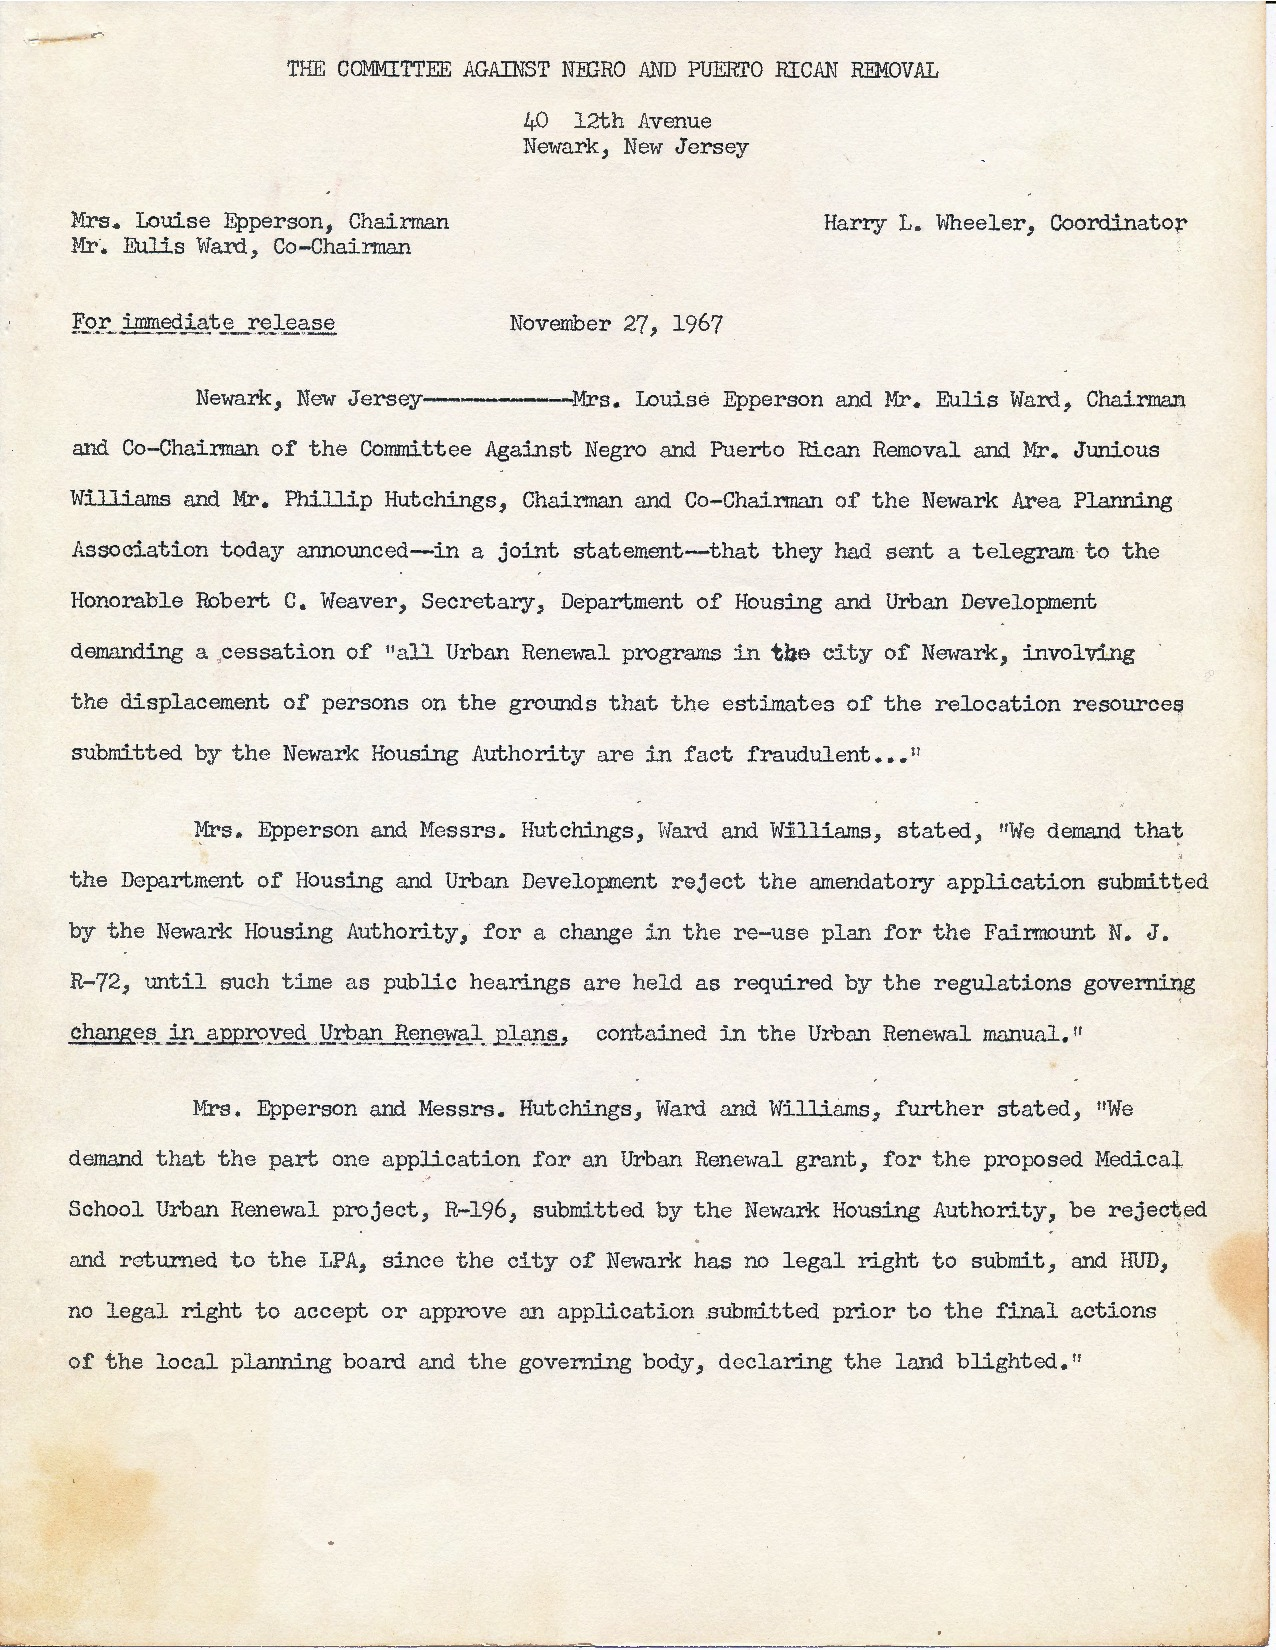 Letter from Committee Against Negro and Puerto Rican Removal